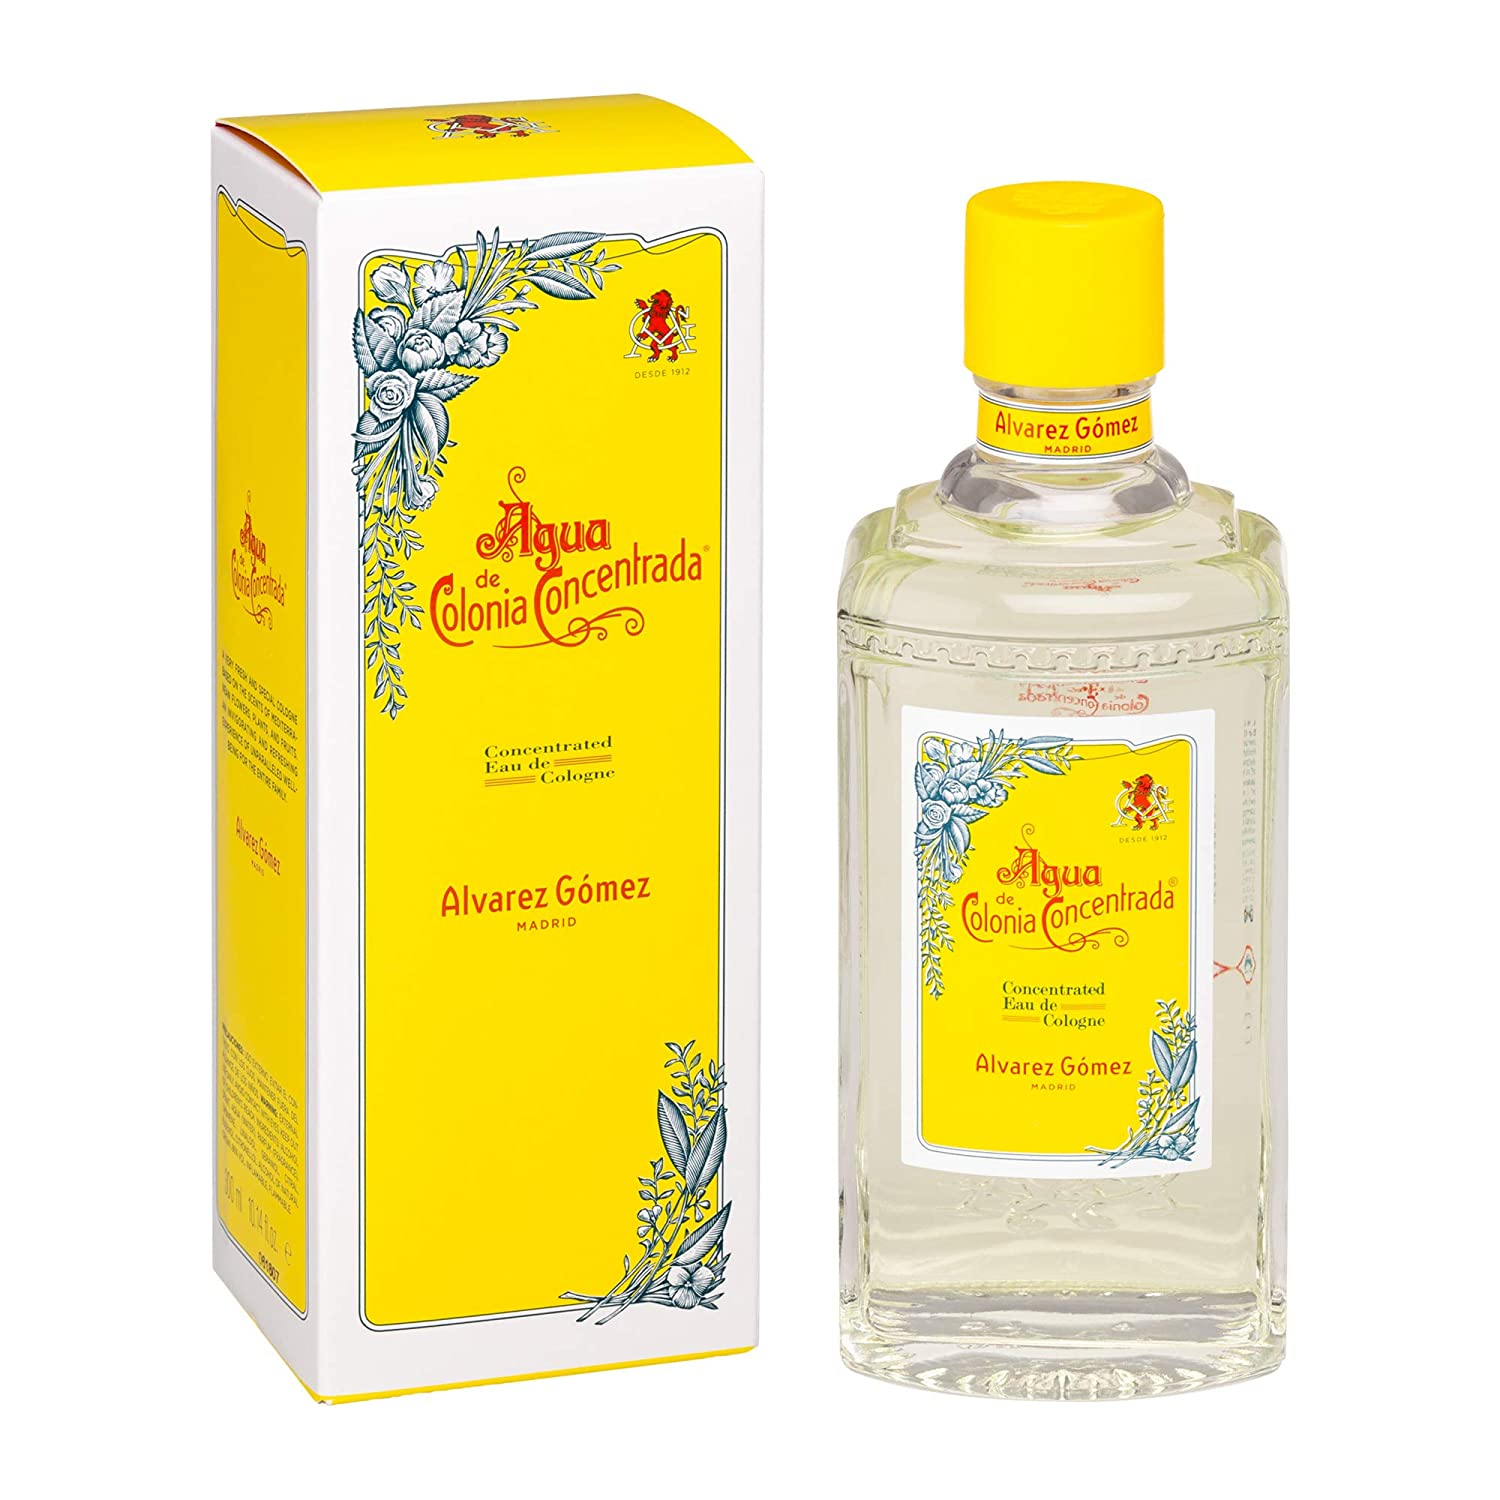 Amazon.com : Alvarez Gomez Agua de Colonia Concentrada Eau de Cologne Splash, 10.14 Ounce : Beauty